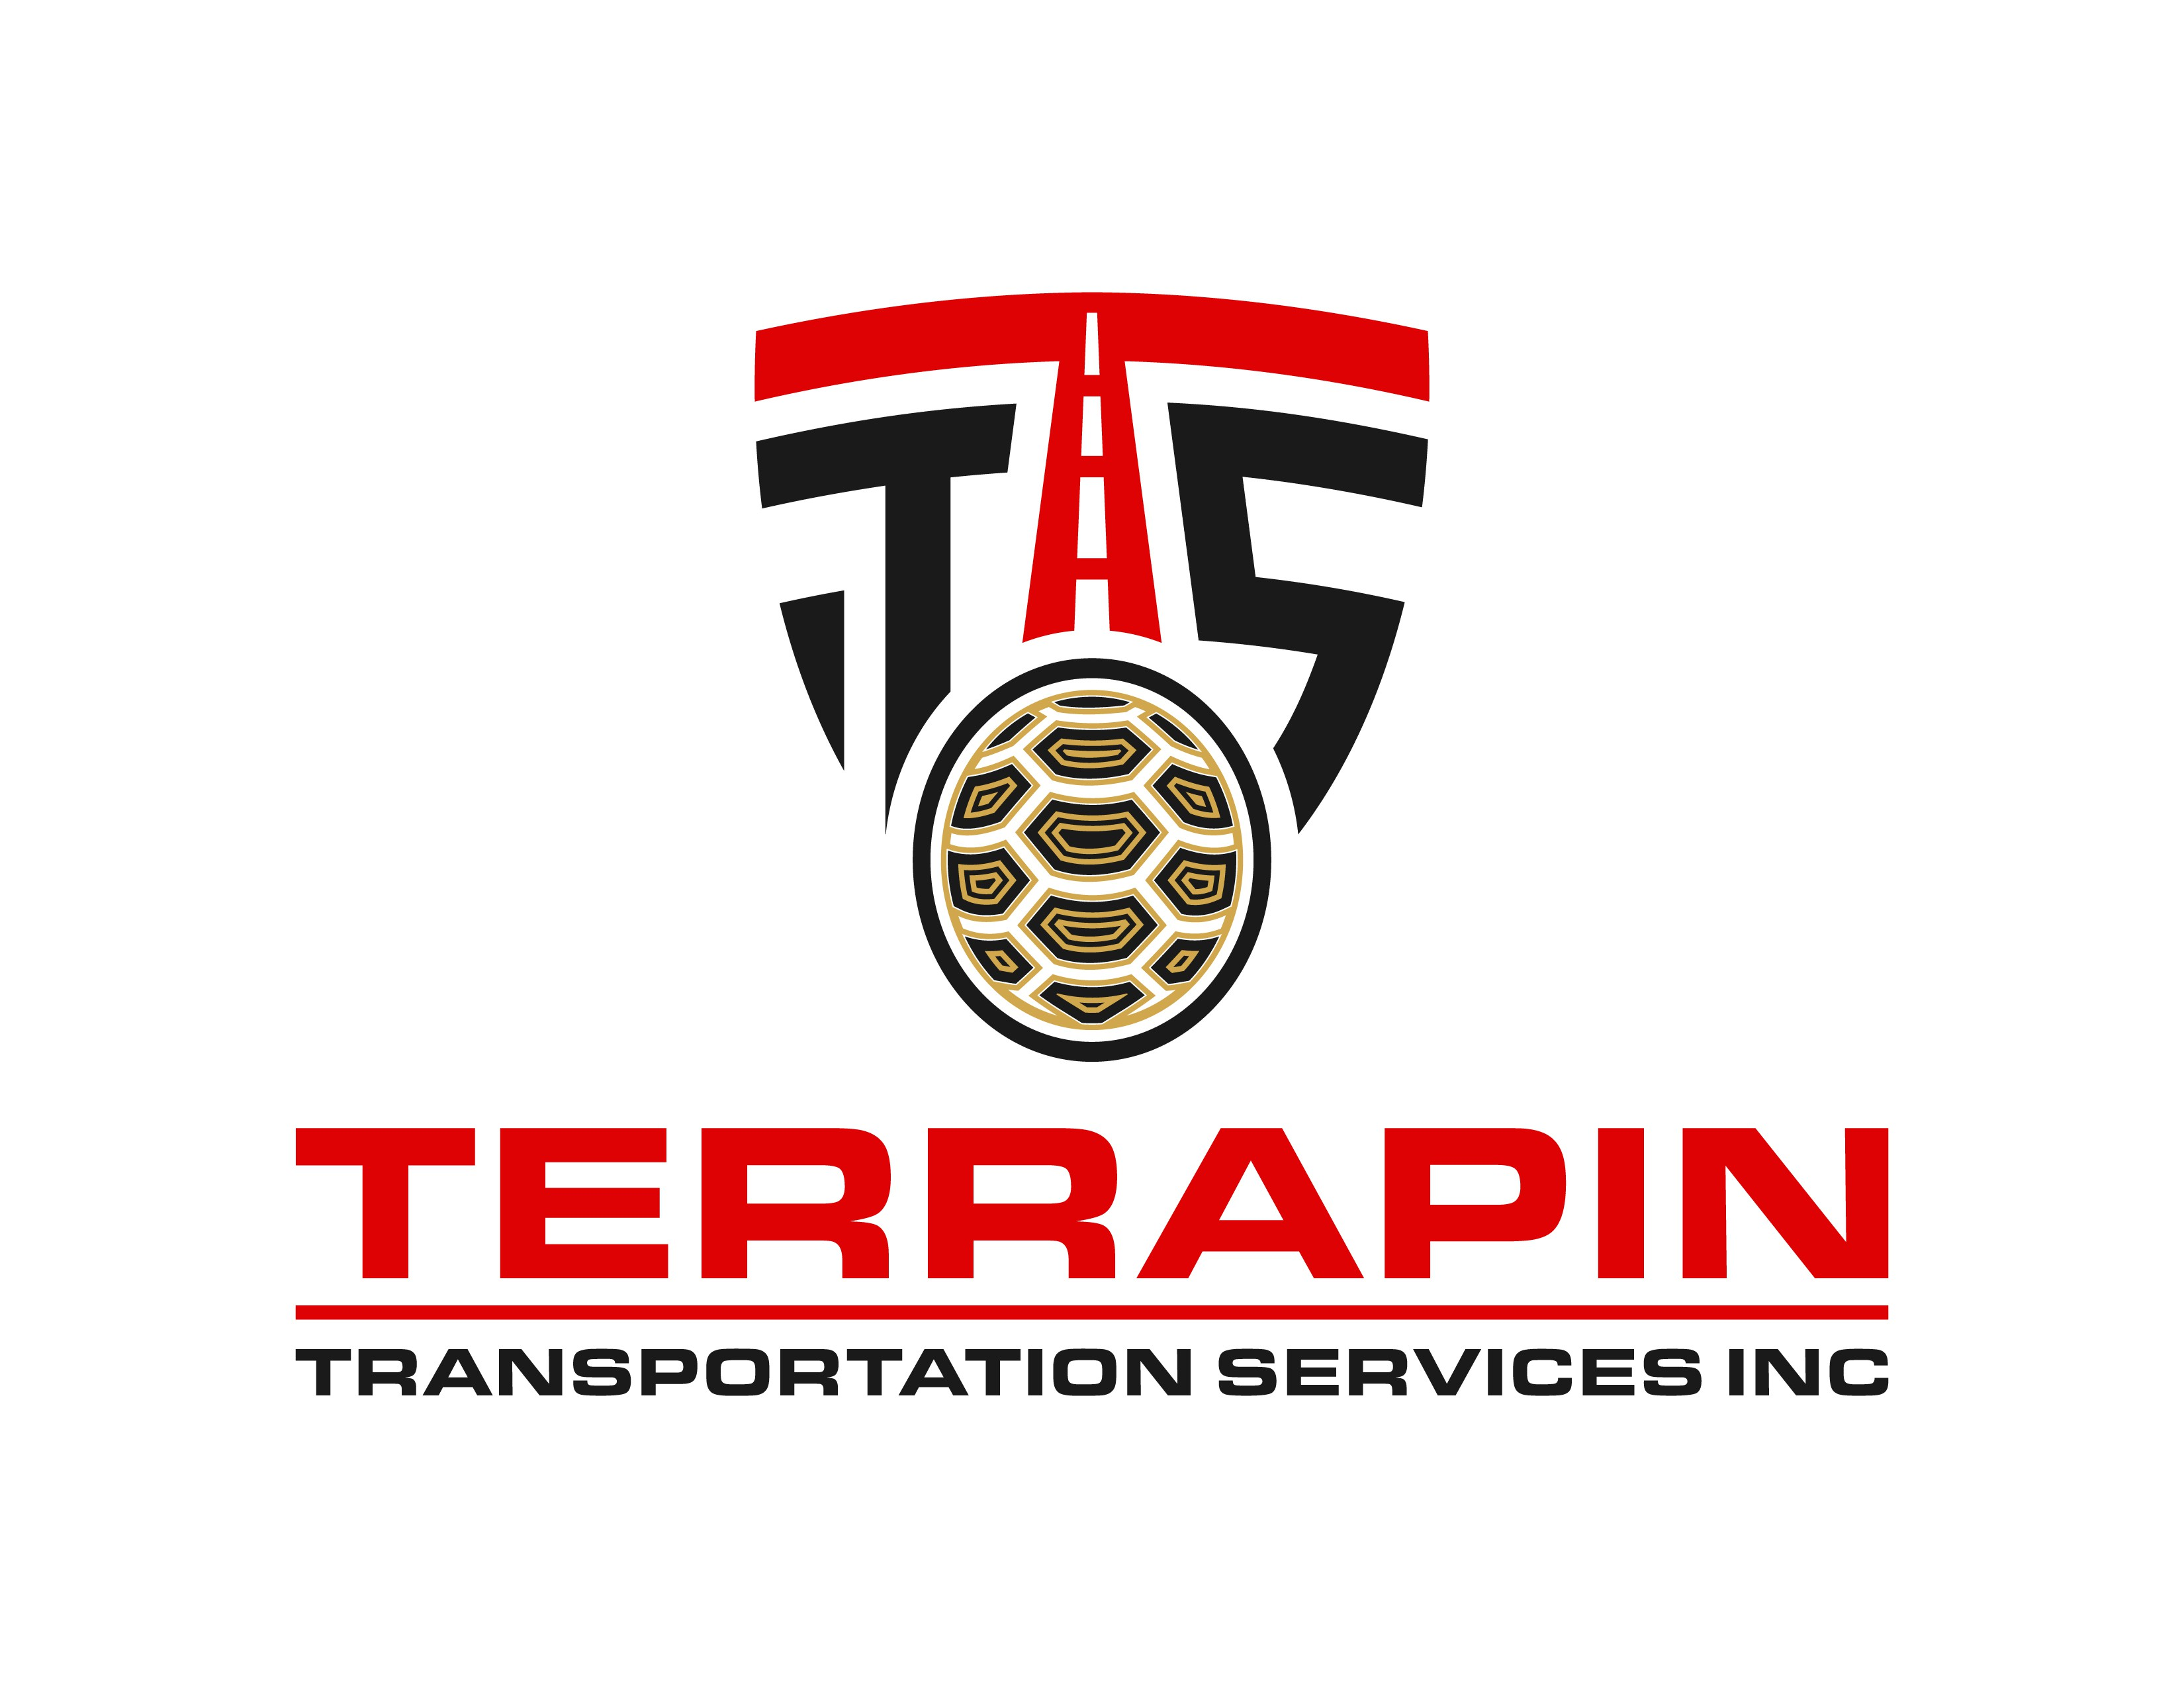 Terrapin Transportation Services